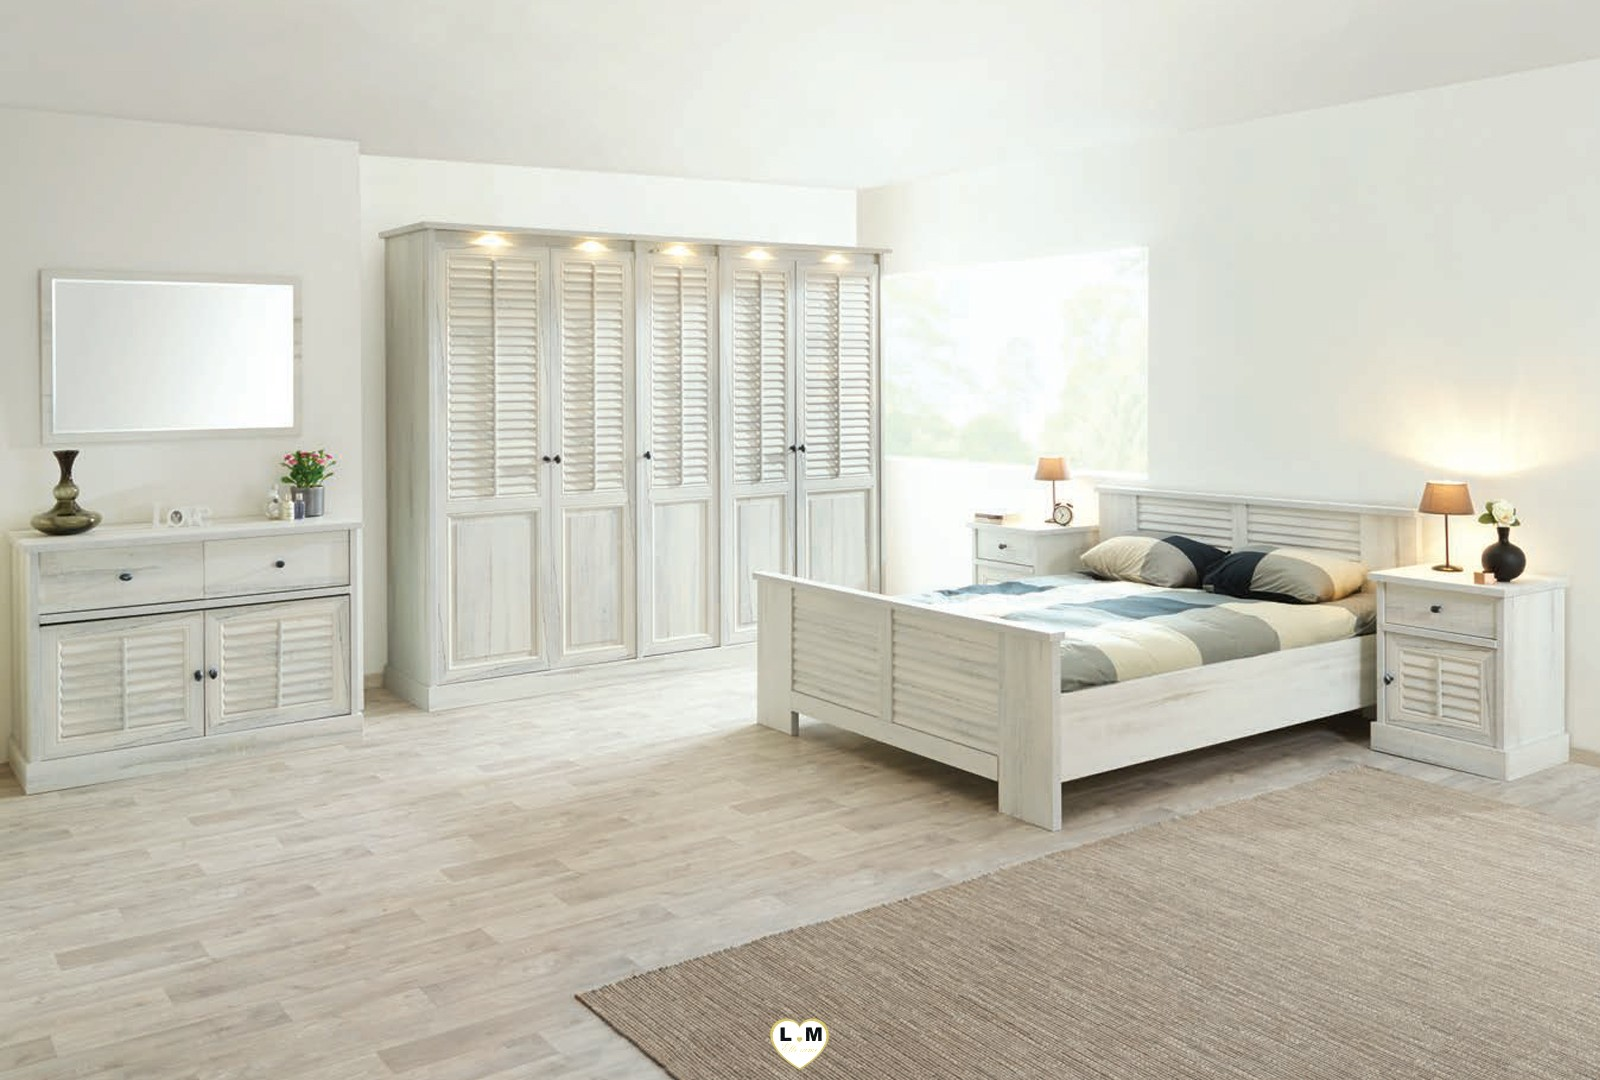 merida bois blanc vieilli ensemble chambre a coucher. Black Bedroom Furniture Sets. Home Design Ideas